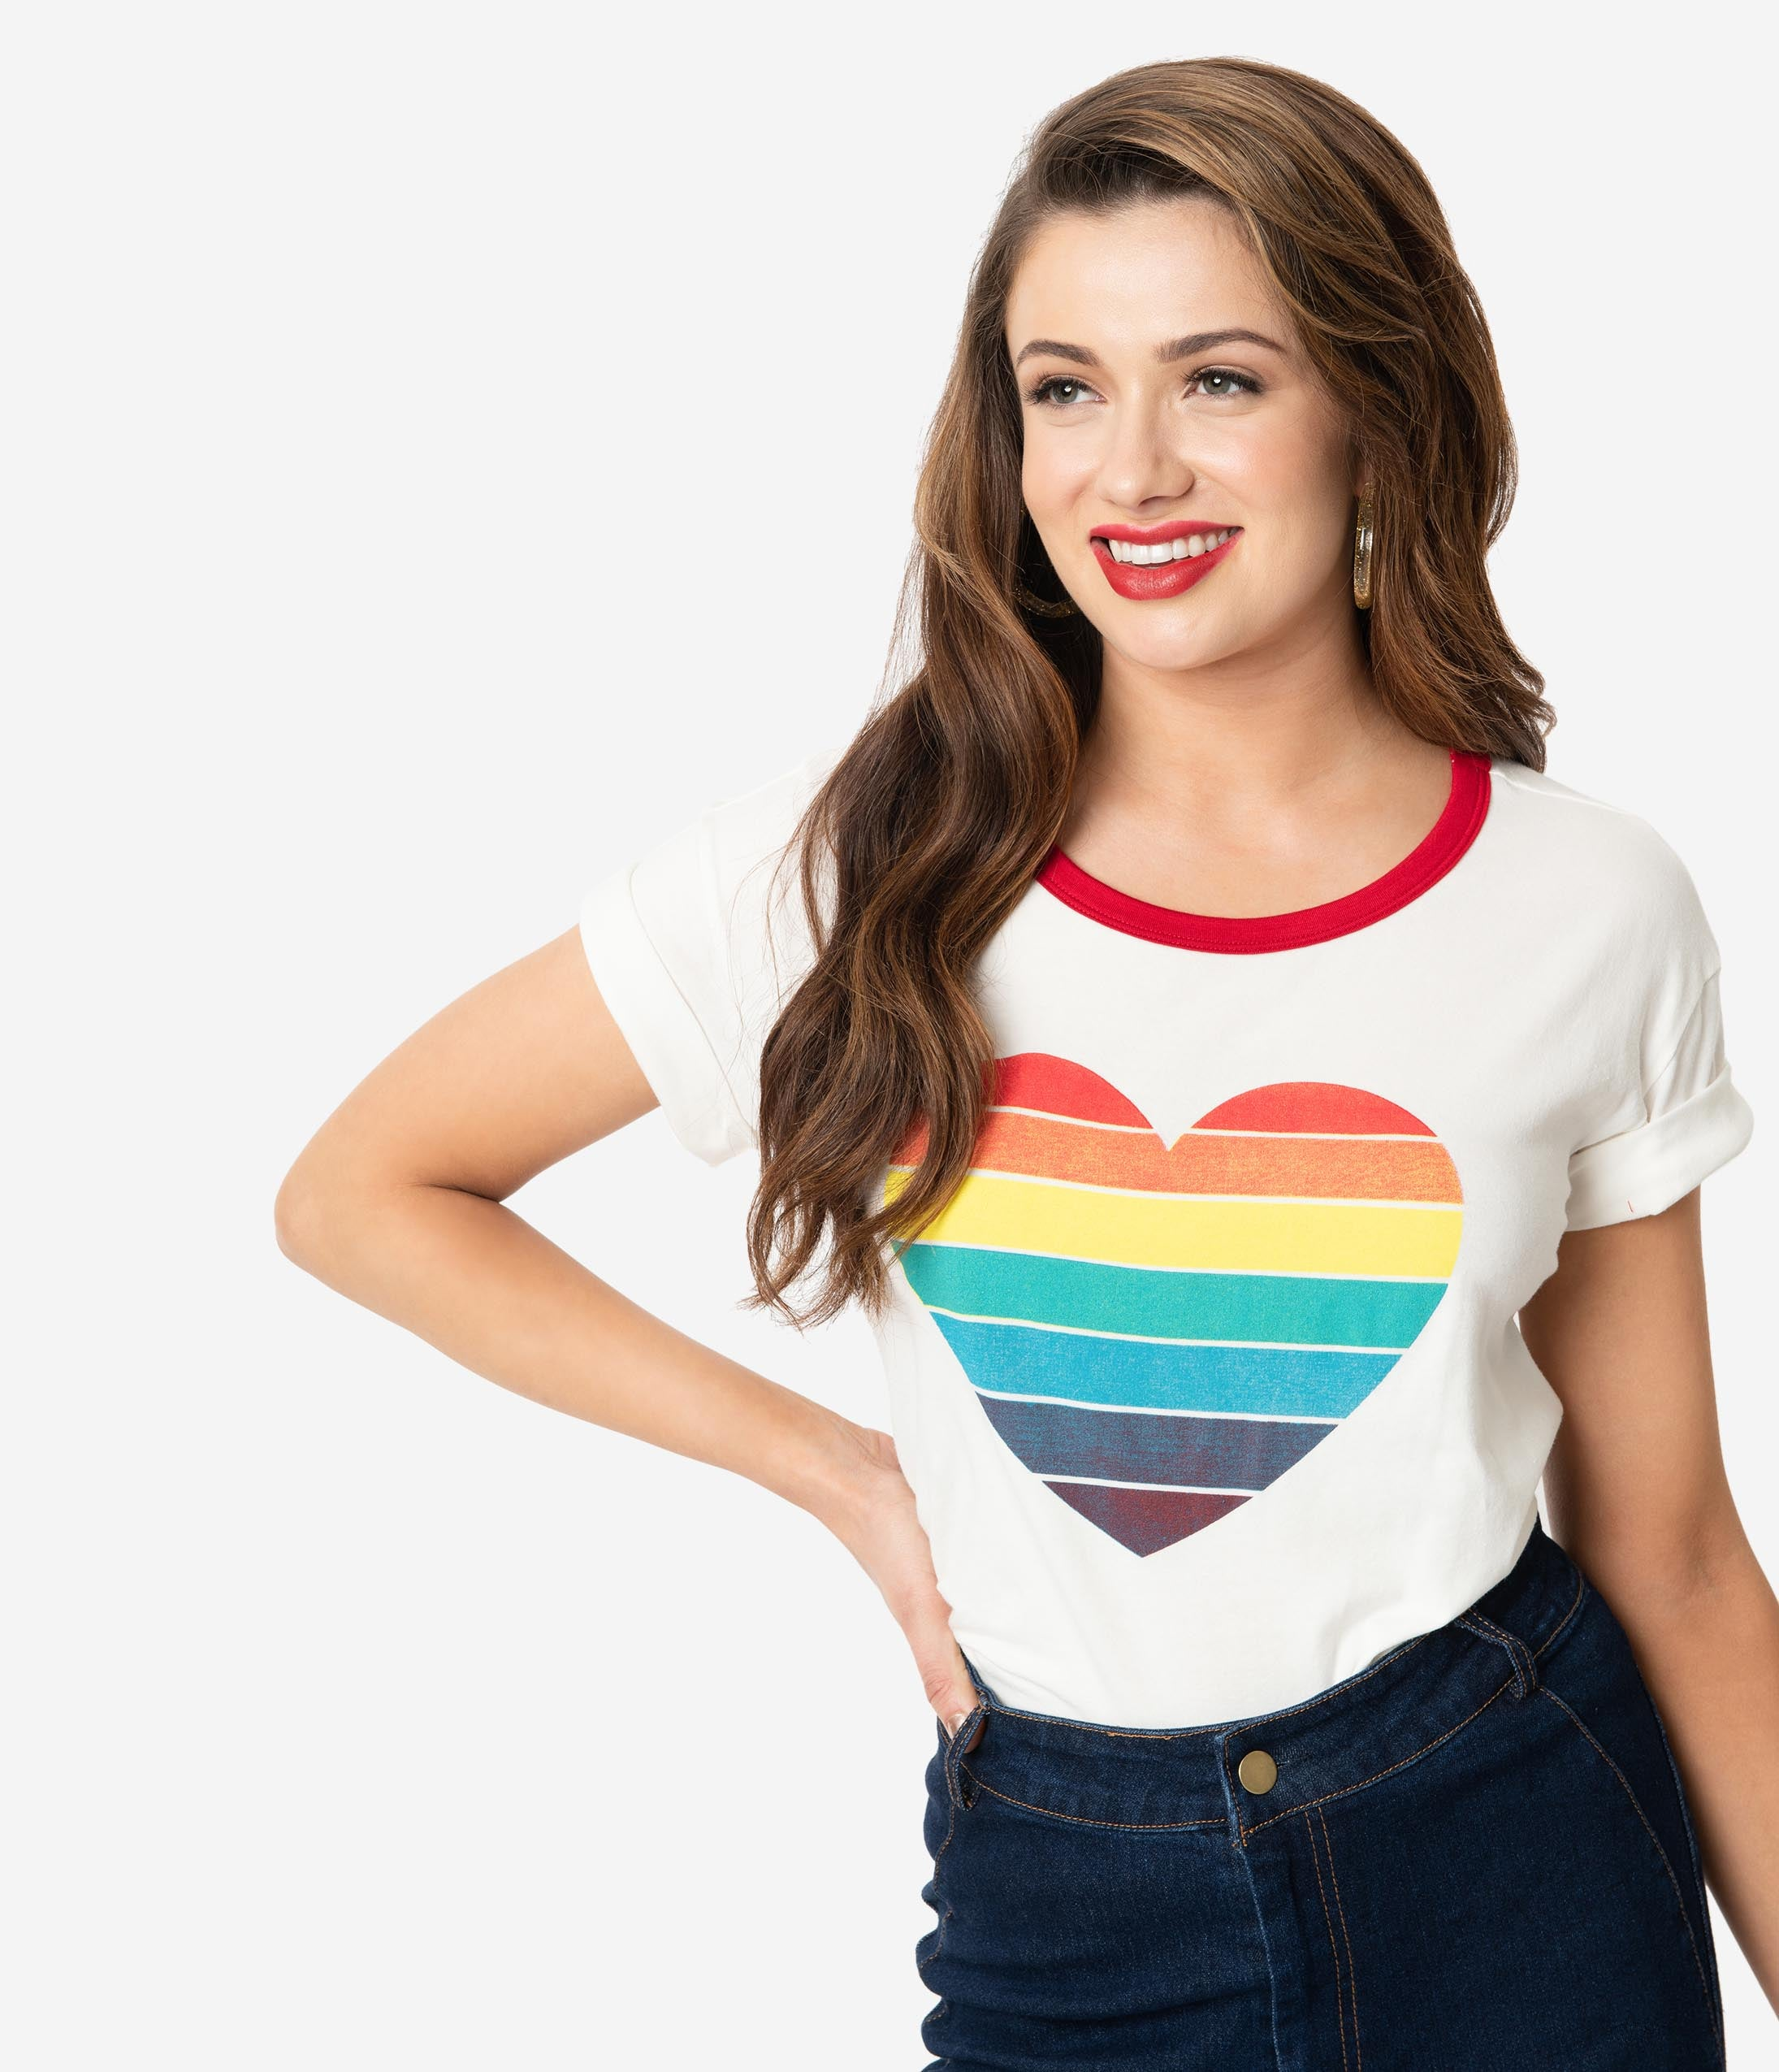 Women's 70s Shirts, Blouses, Hippie Tops Retro Style Ivory  Rainbow Heart Graphic Cotton Unisex Tee $26.00 AT vintagedancer.com